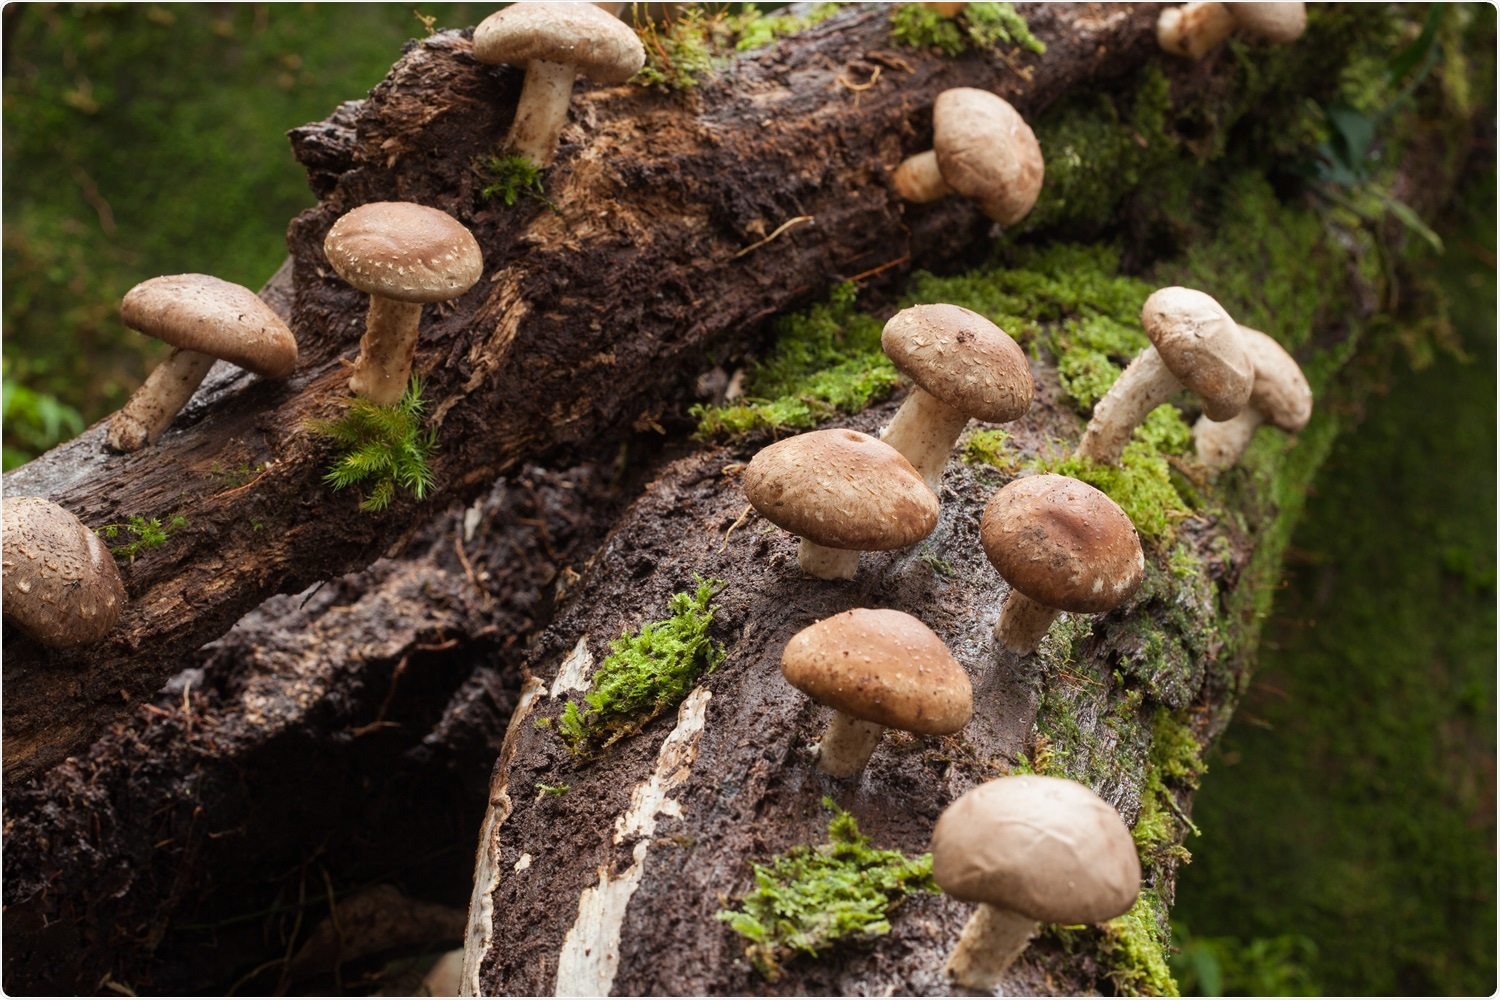 """Study: What's for dinner this time?: DNA authentication of """"wild mushrooms"""" in food products sold in the USA. Image Credit: Puttography/Shutterstock"""